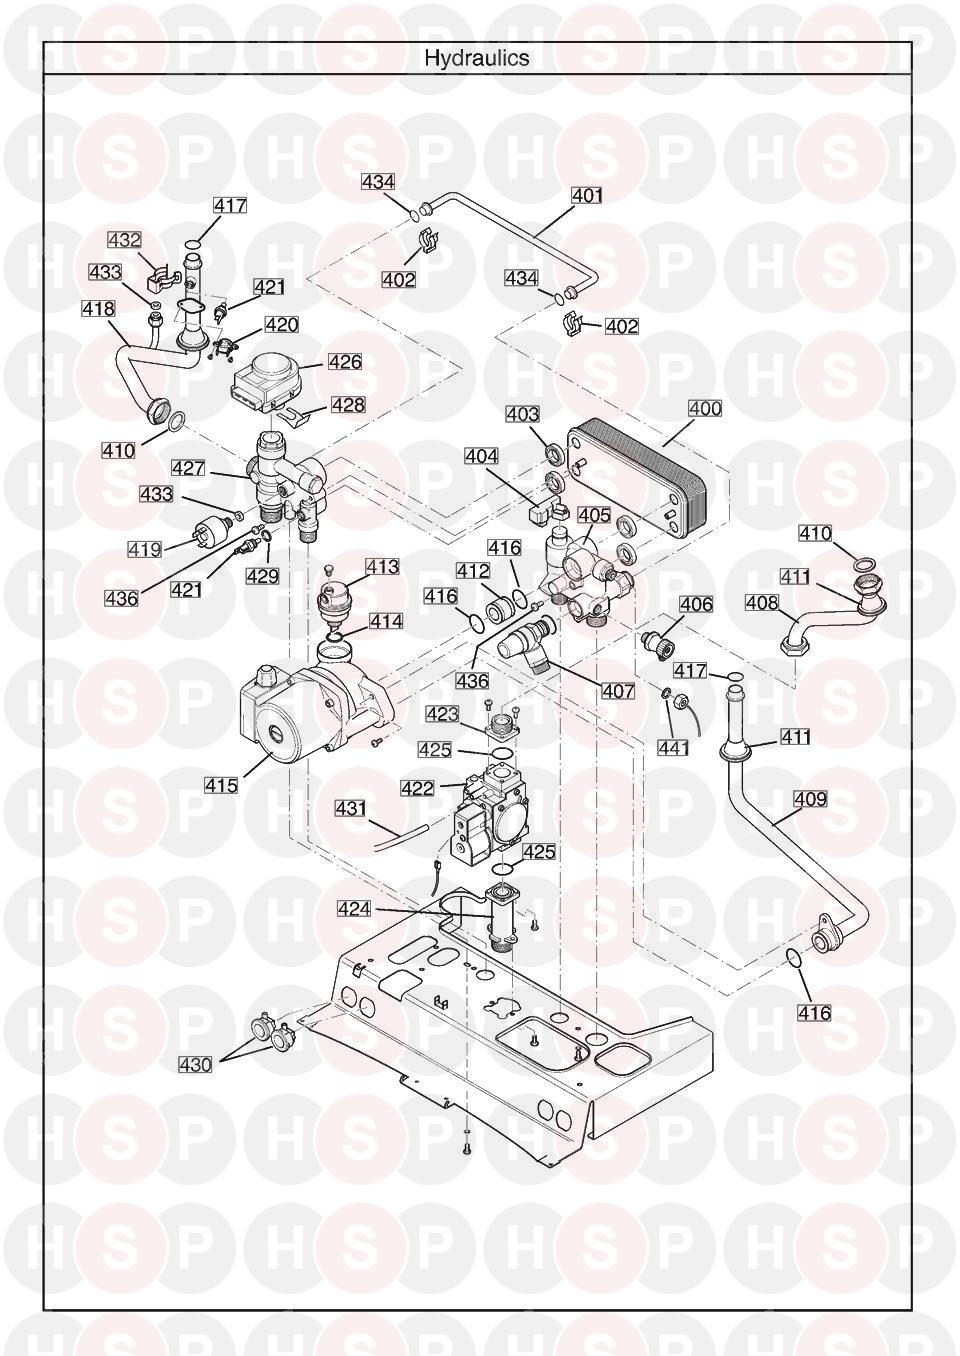 Baxi DUO TEC 40 HE A (ISSUE 8) (HYDRAULICS) Diagram